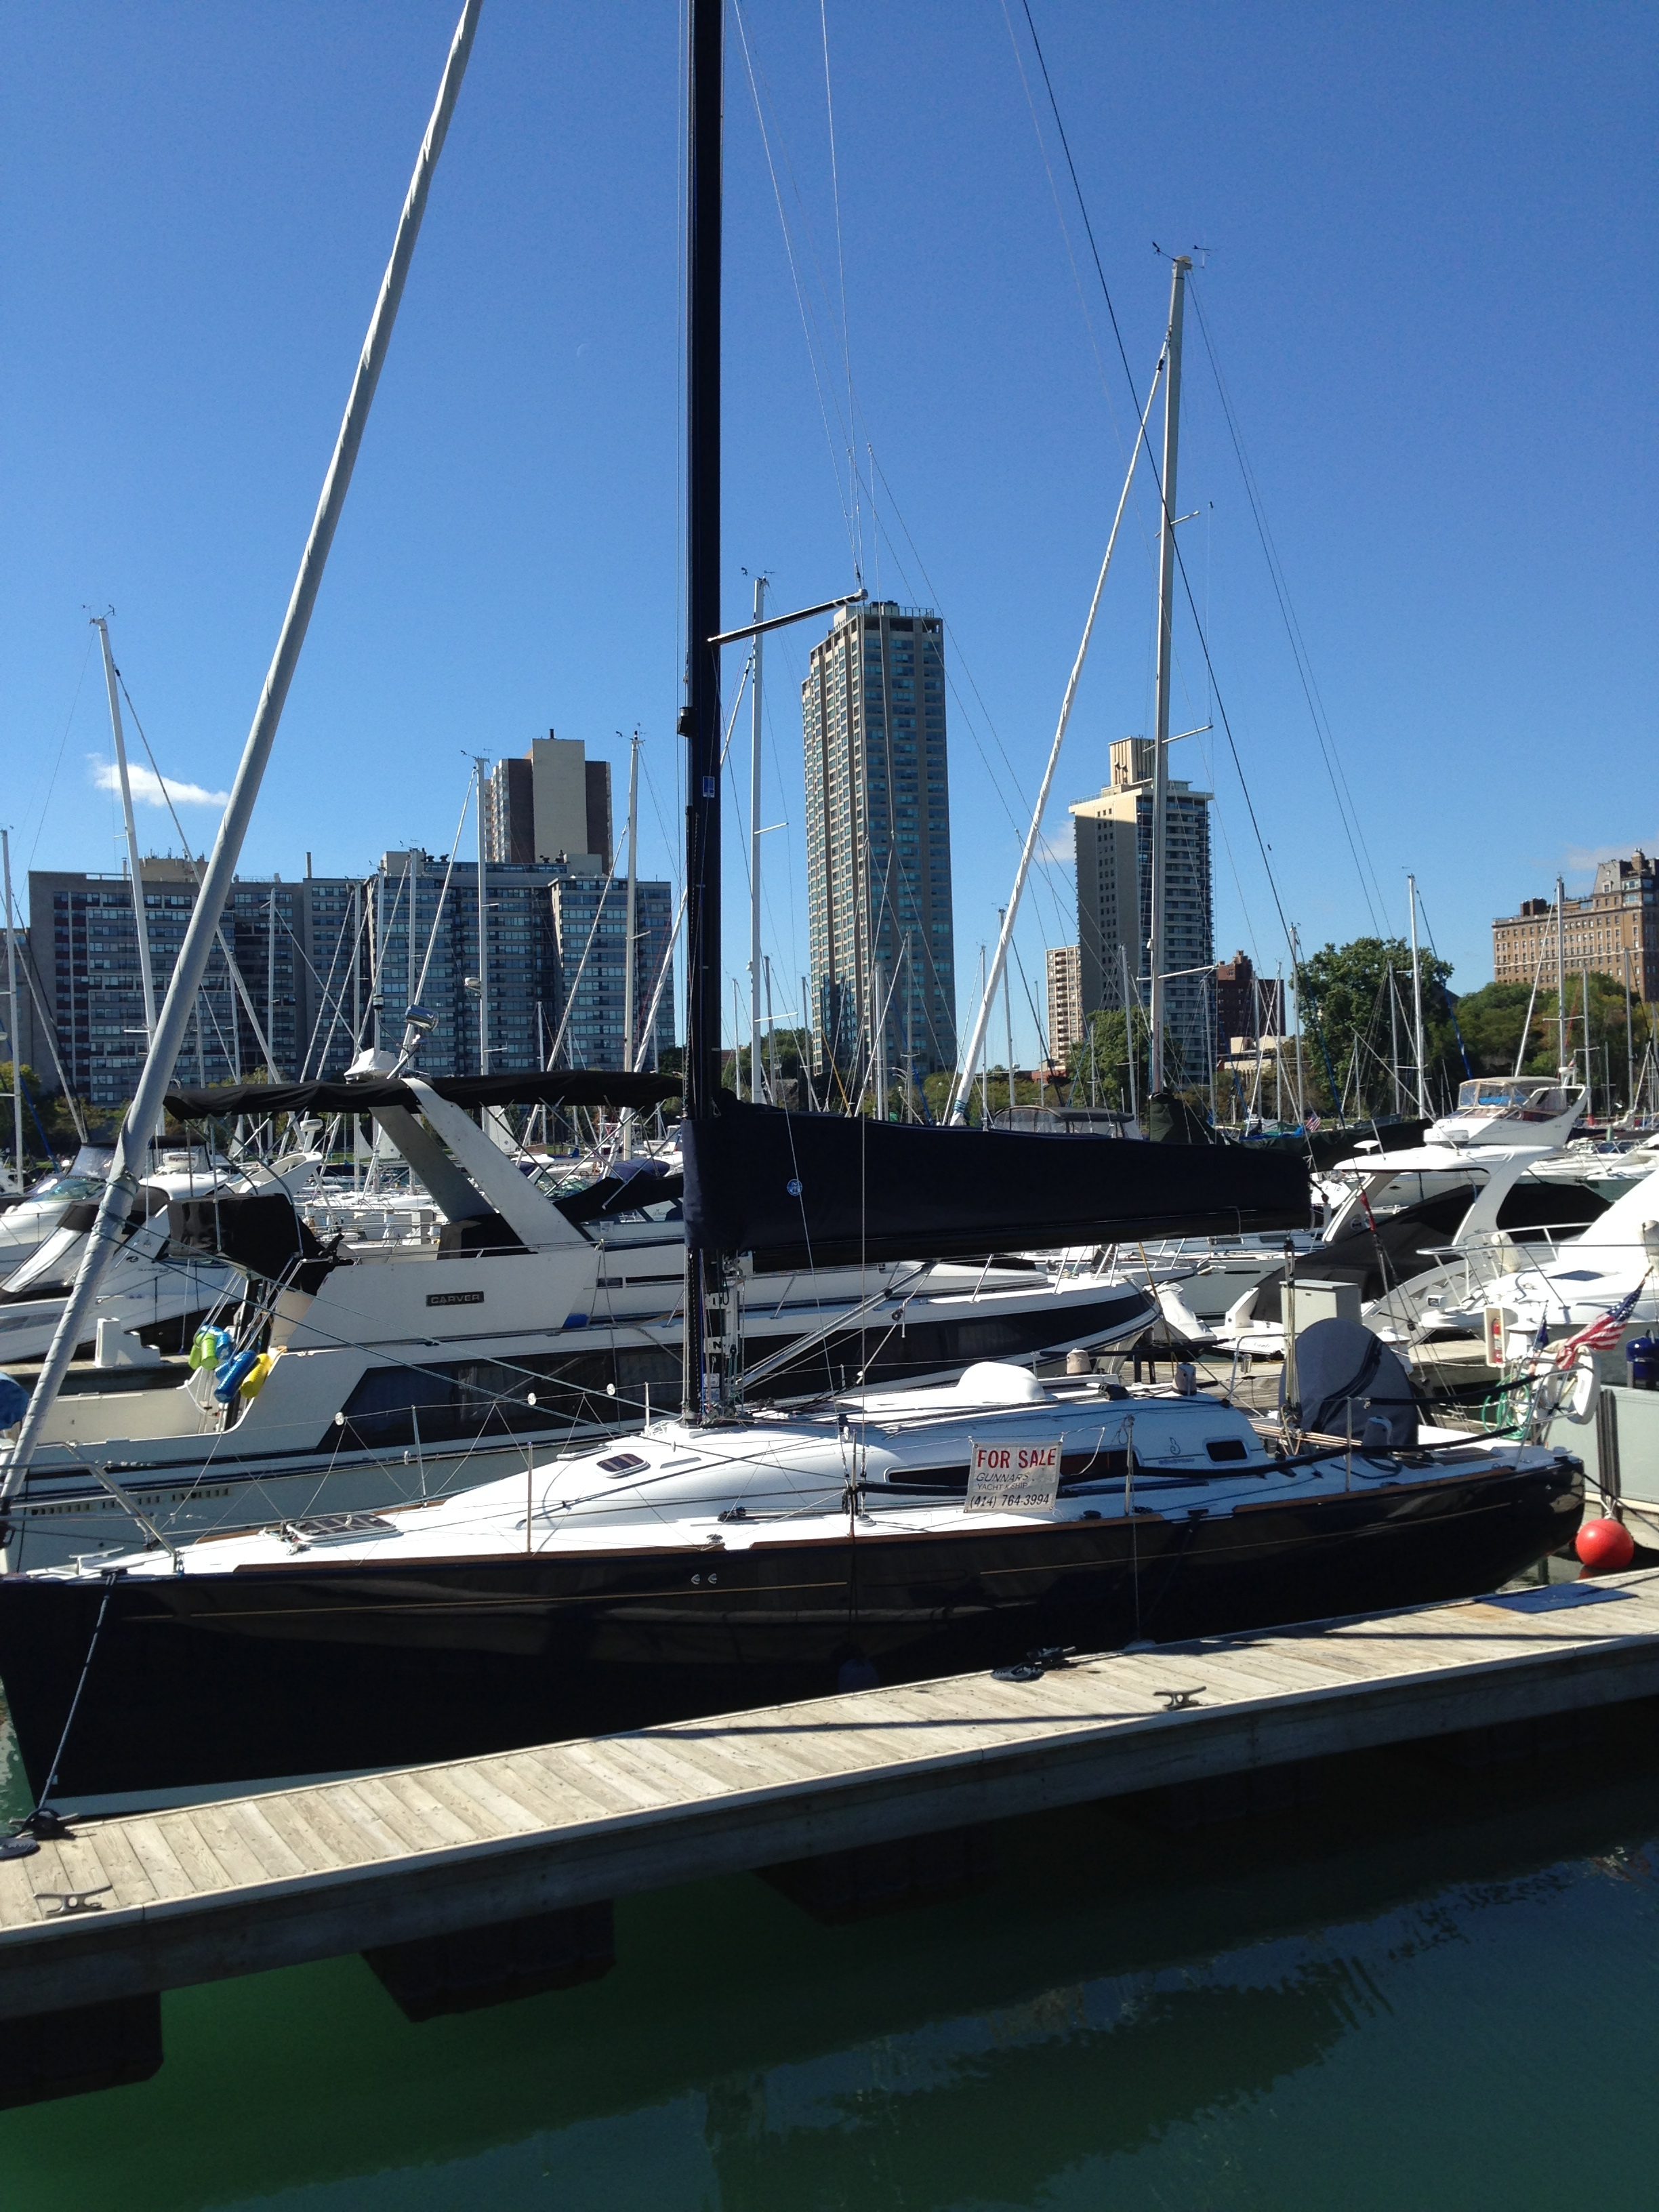 I used to walk by this boat everyday in Belmont Harbor in Chicago. I loved it so much but a bit out of my price range. Someday though!!